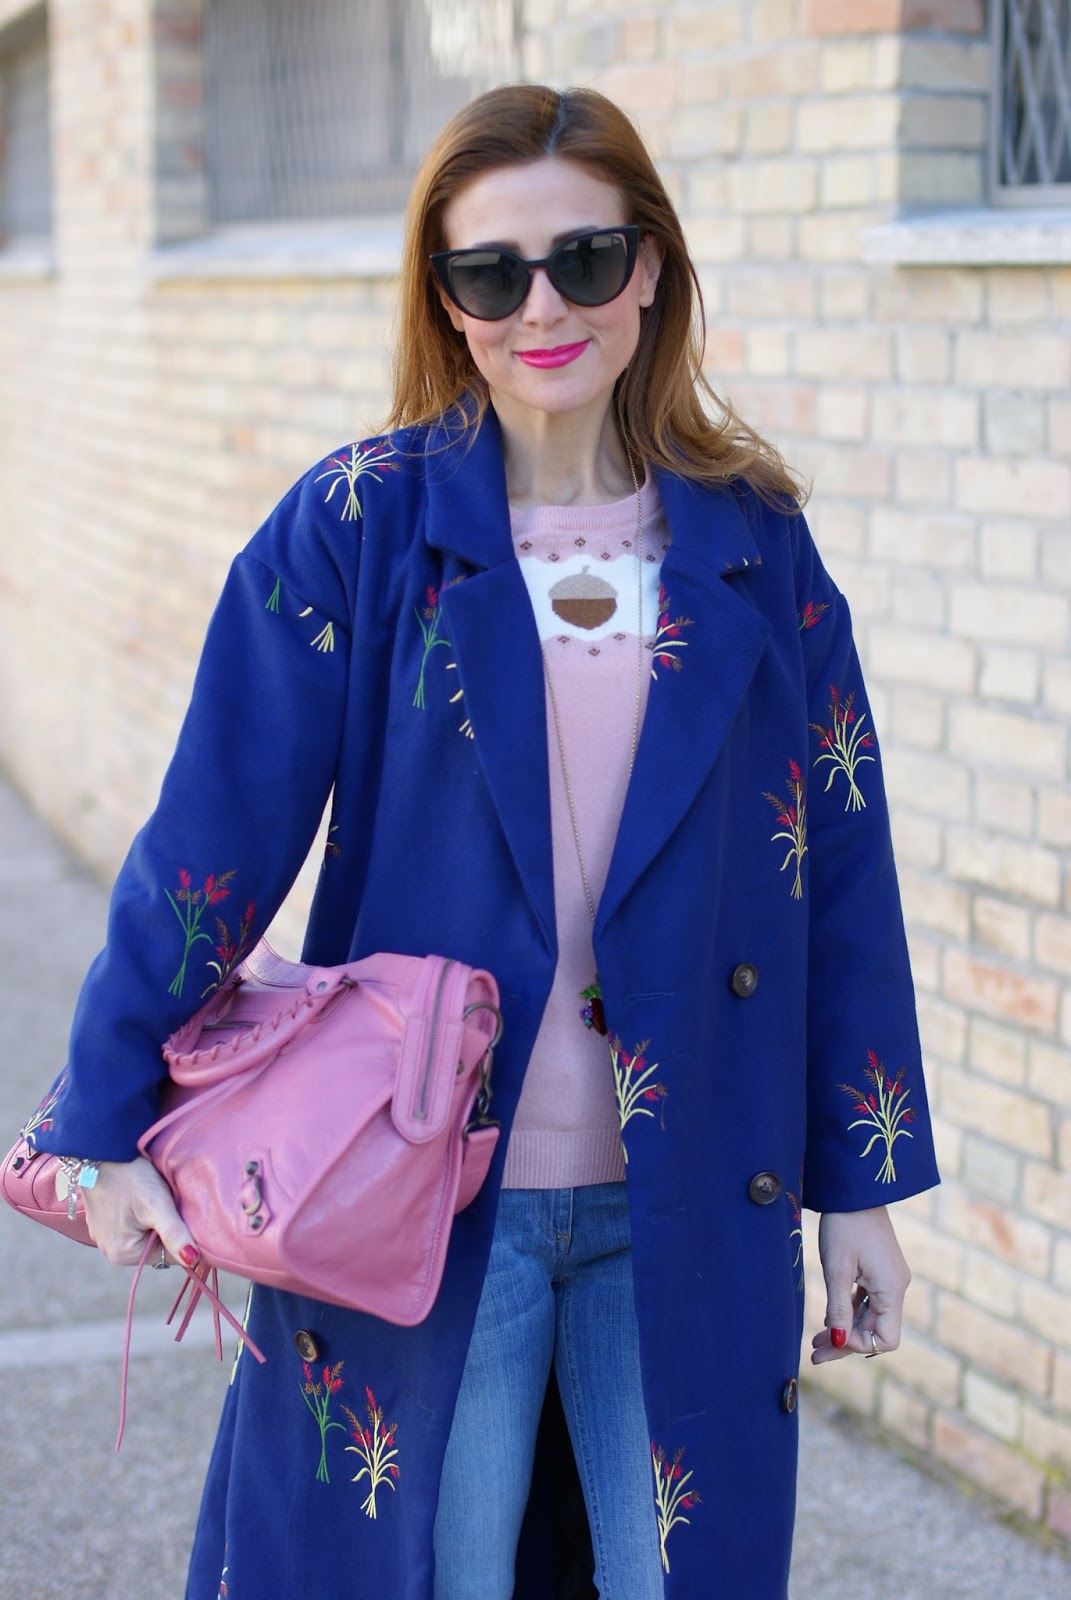 Pink Balenciaga bag and Zaful coat on Fashion and Cookies fashion blog, fashion blogger style